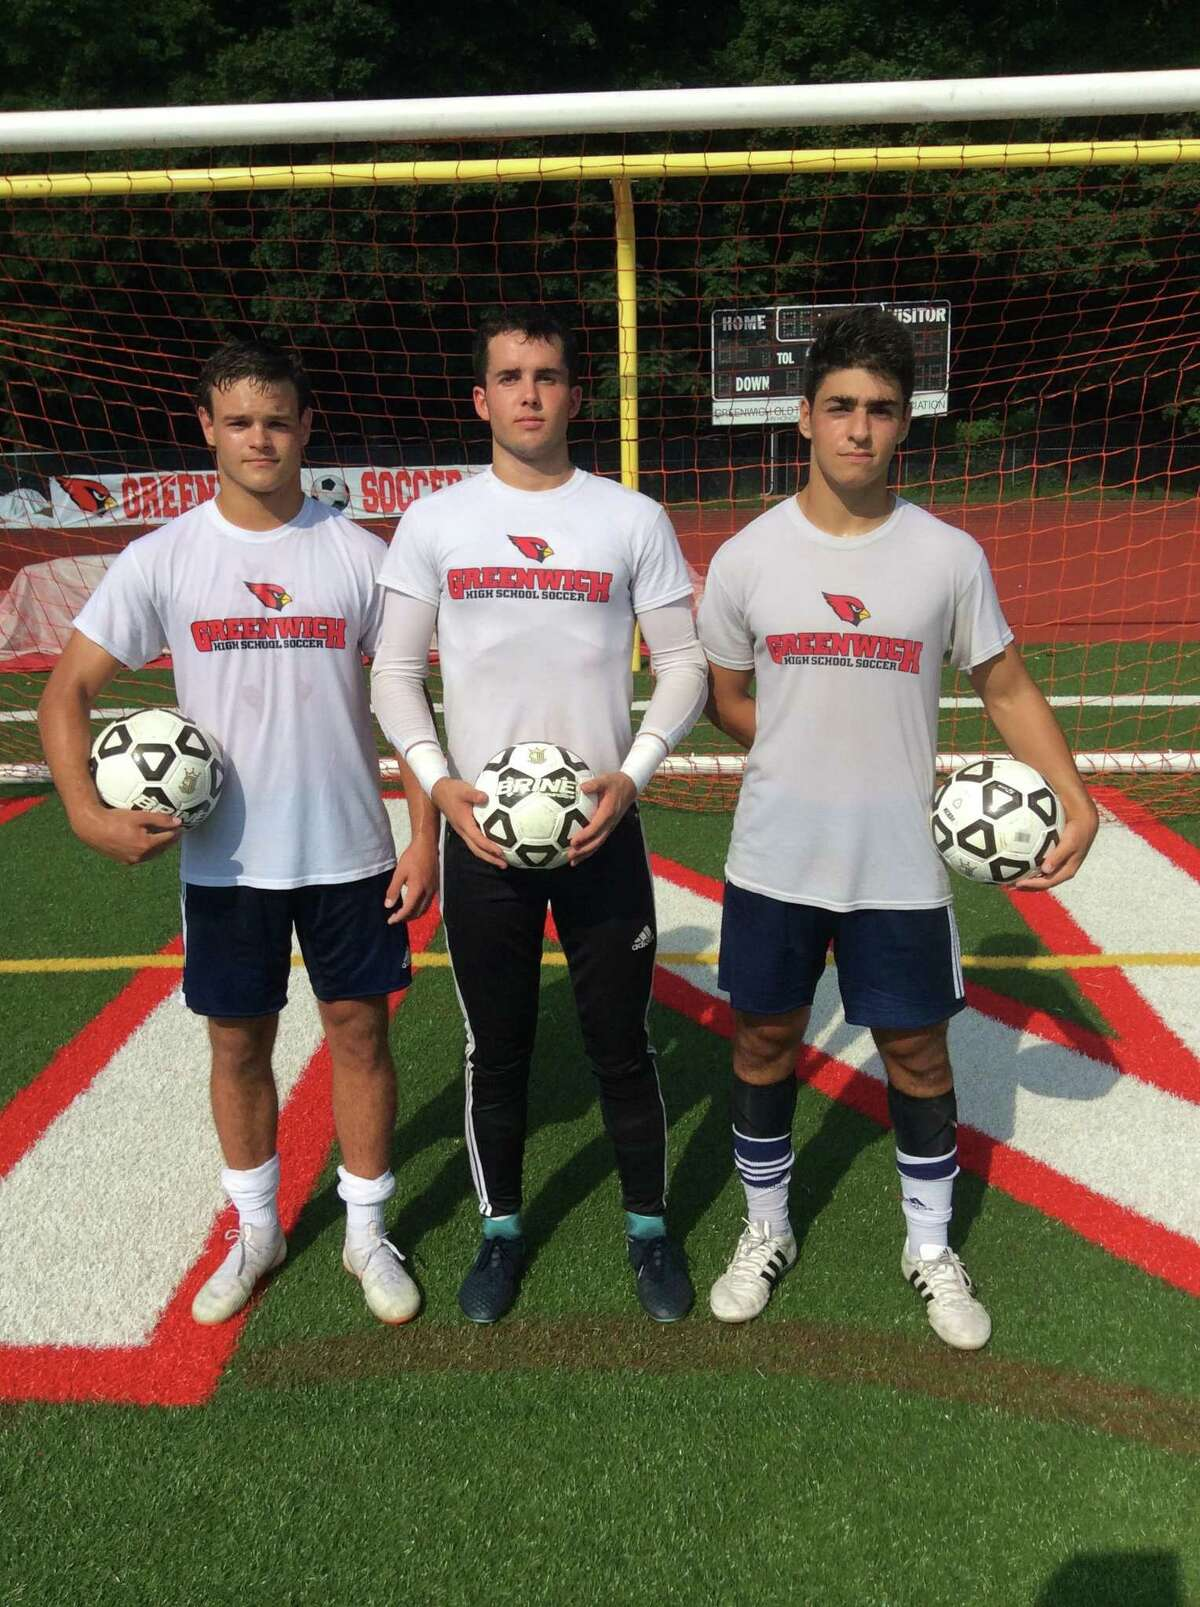 From left to right, Francisco Liguori, Jimmy Johnson and Ben Rifkin are senior captains of the Greenwich High School boys soccer team, which won the FCIAC championship in 2017. September 3, 2018